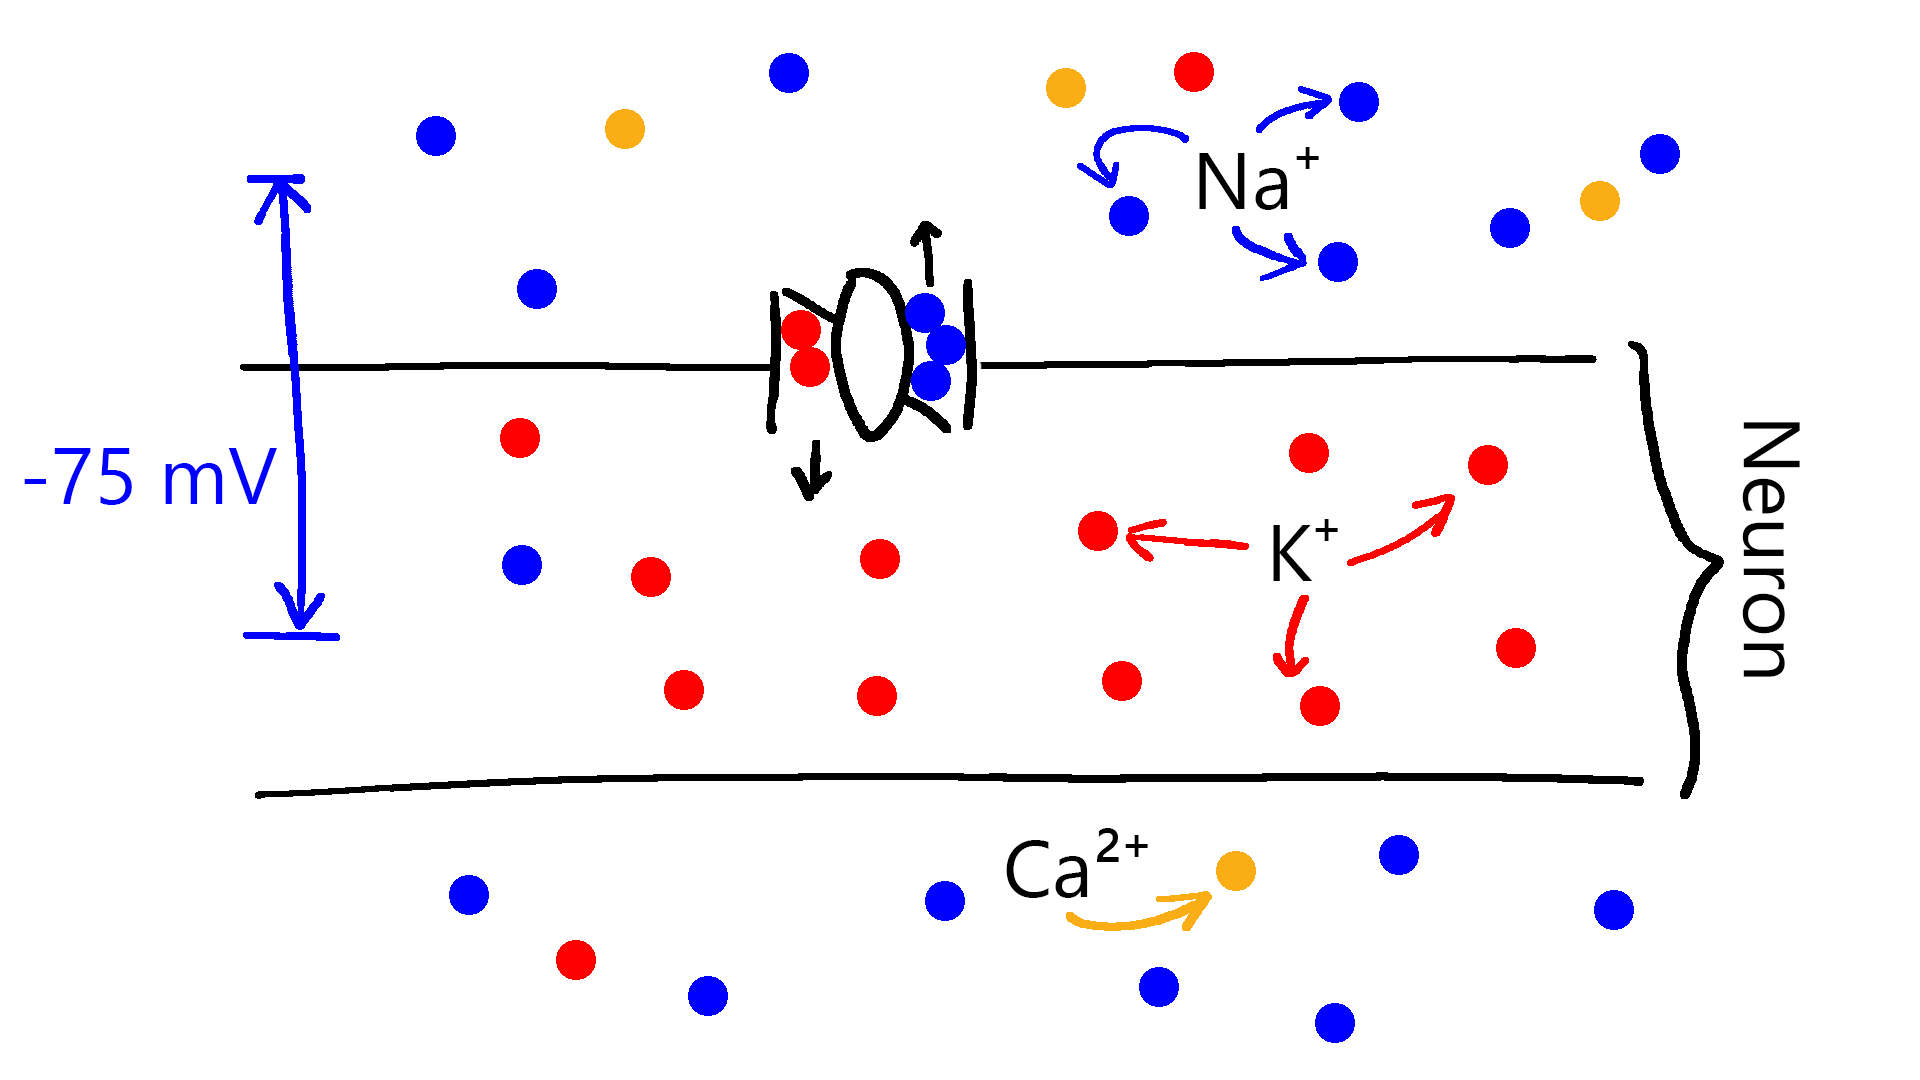 A crude depiction of a Na⁺-K⁺ pump, one of the mechanisms maintaining the ion balance in the neuron. Na⁺-K⁺ pump removes three Na⁺ ions for two K⁺ ions.